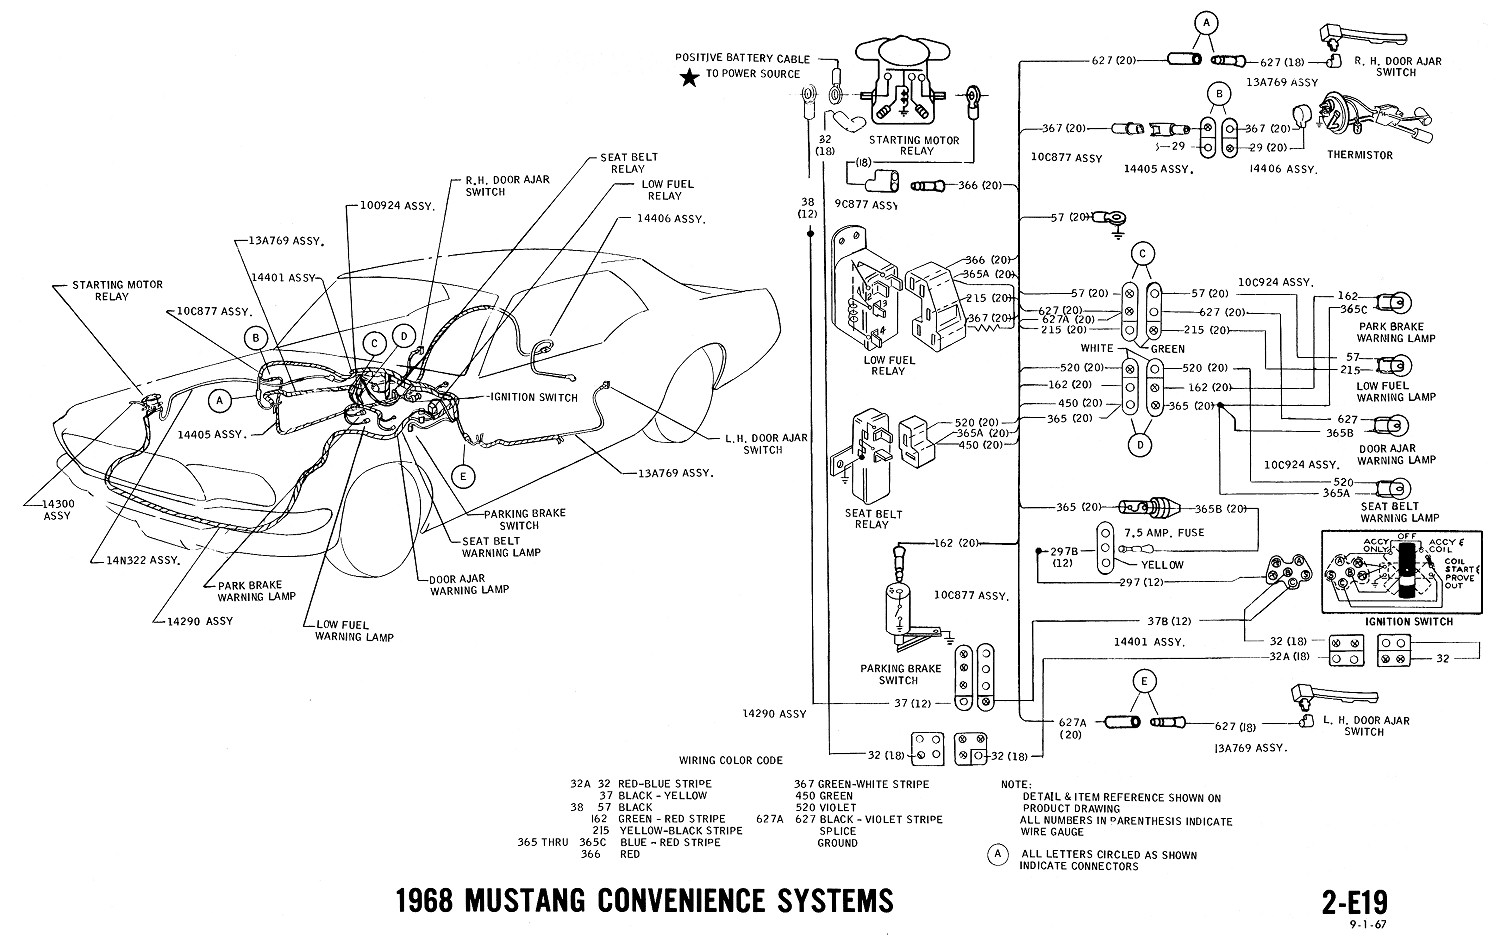 E19 1968 mustang wiring diagrams evolving software 1967 mustang wiring diagram at alyssarenee.co